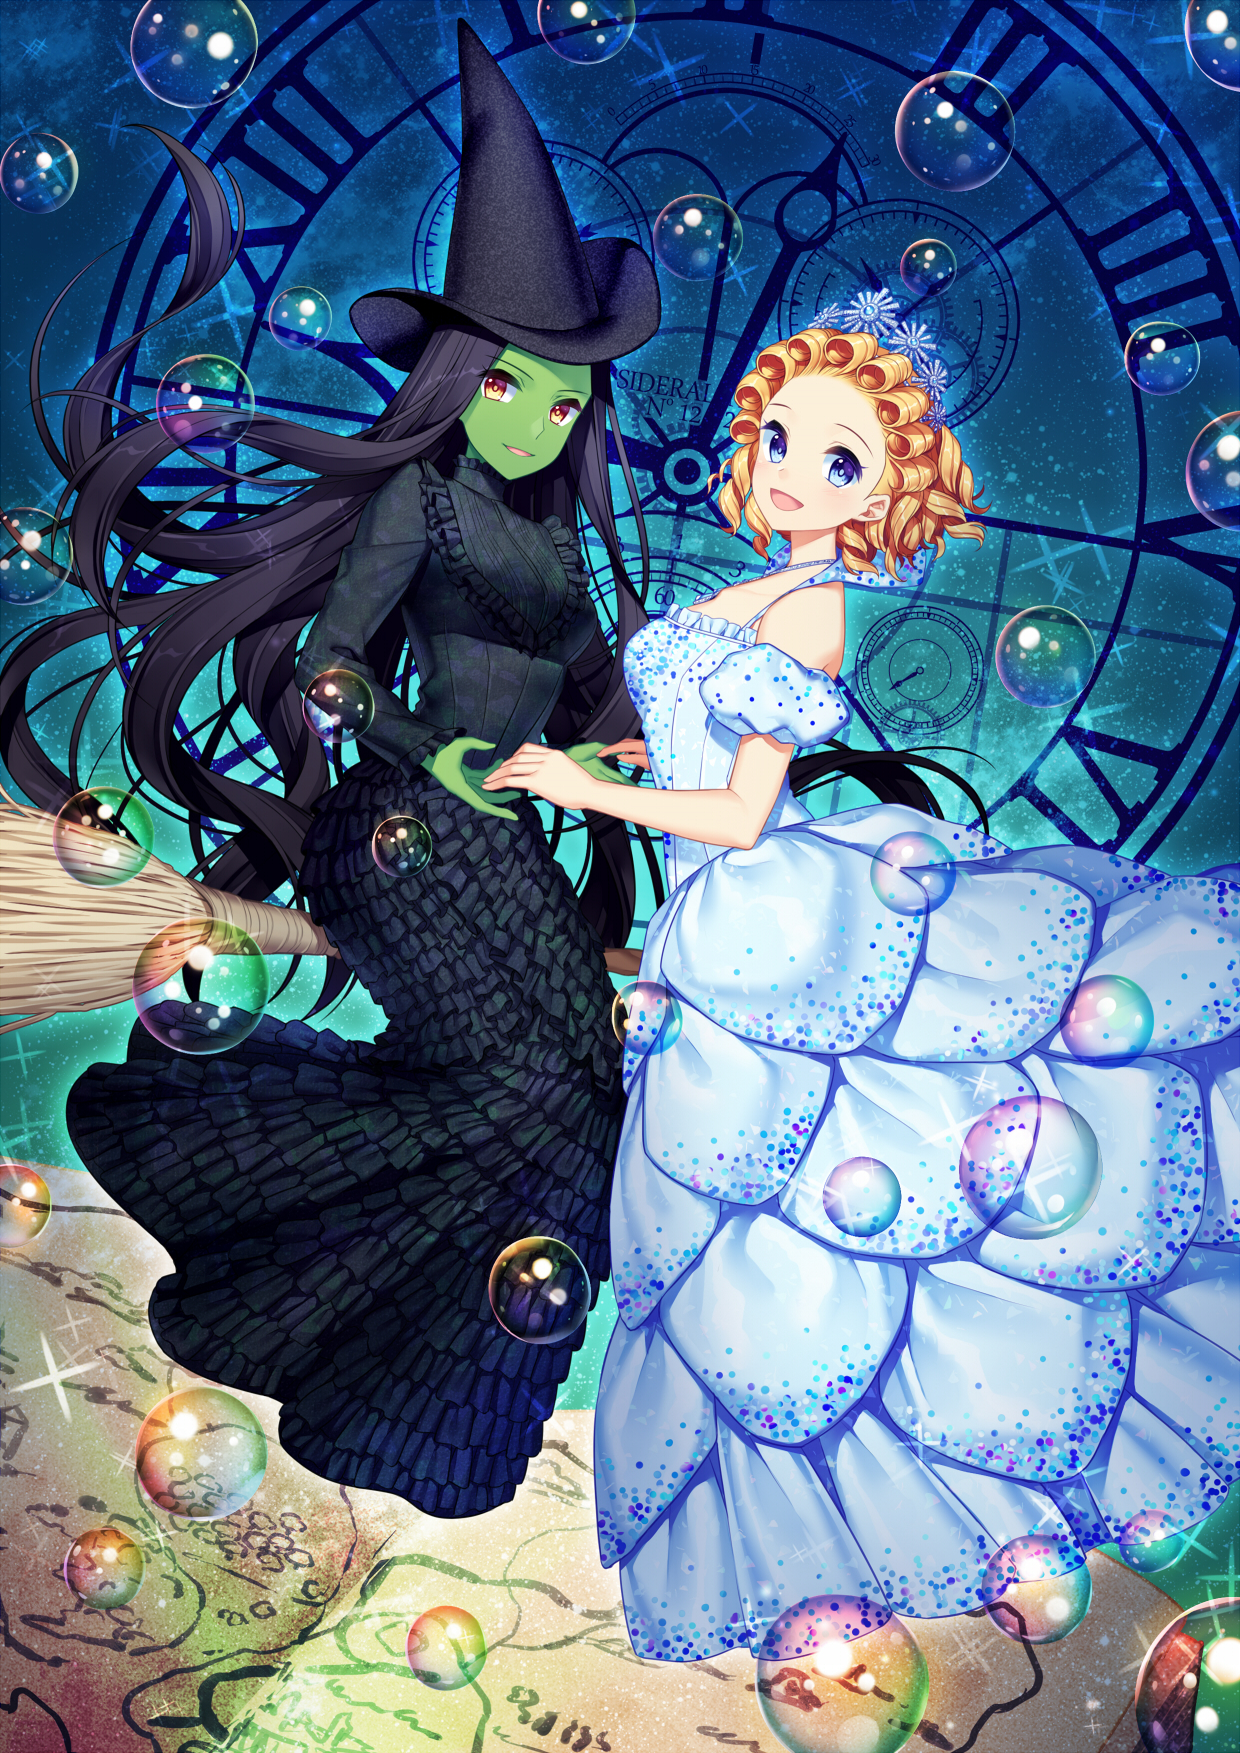 Wicked: The Untold Story of The Witches of Oz/#2011456 ...